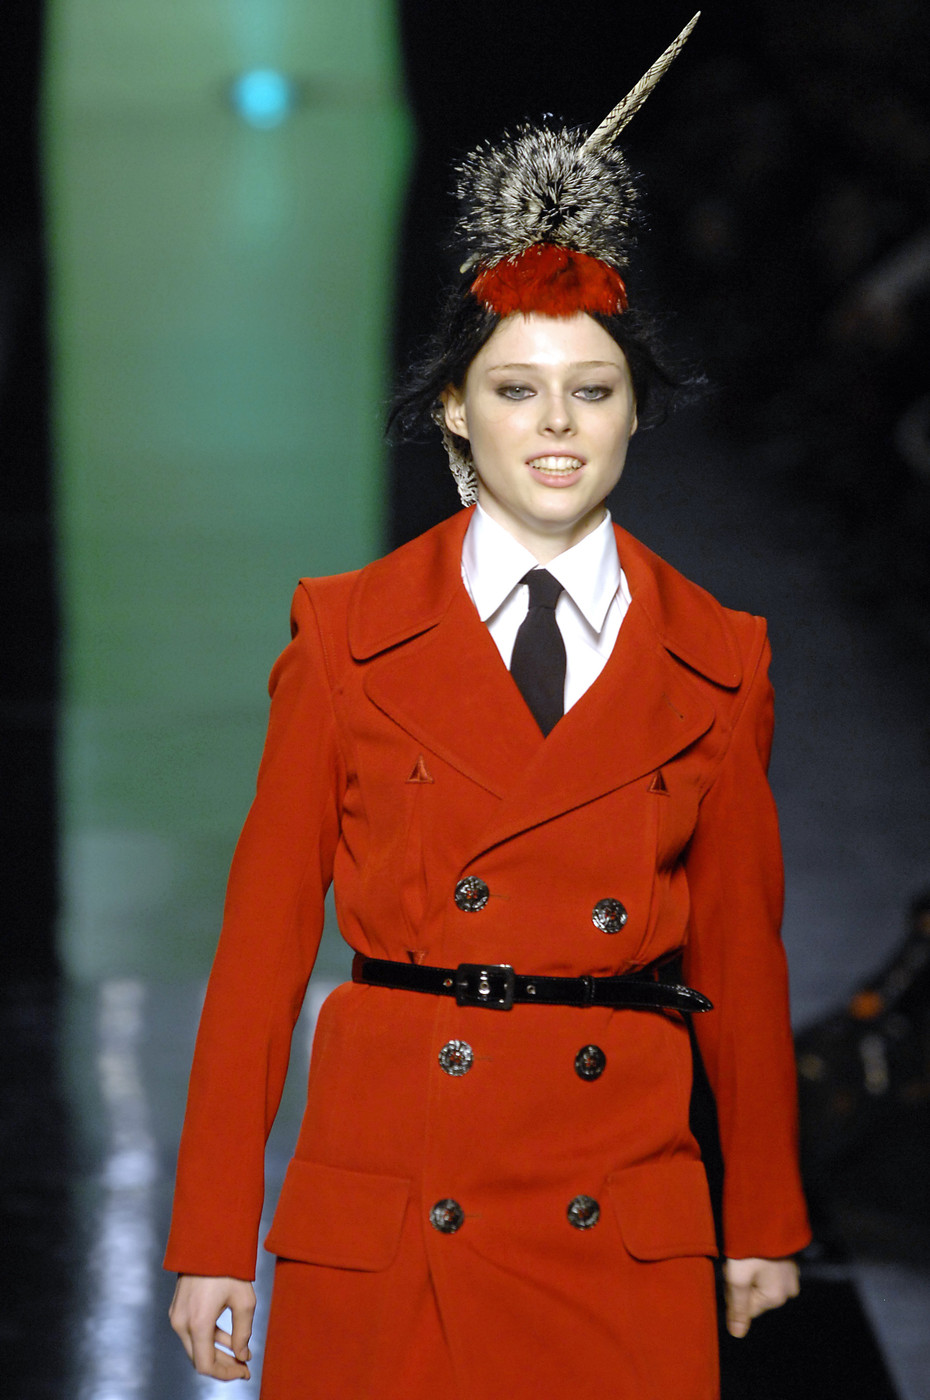 jean paul gaultier at paris fashion week fall 2007 livingly. Black Bedroom Furniture Sets. Home Design Ideas